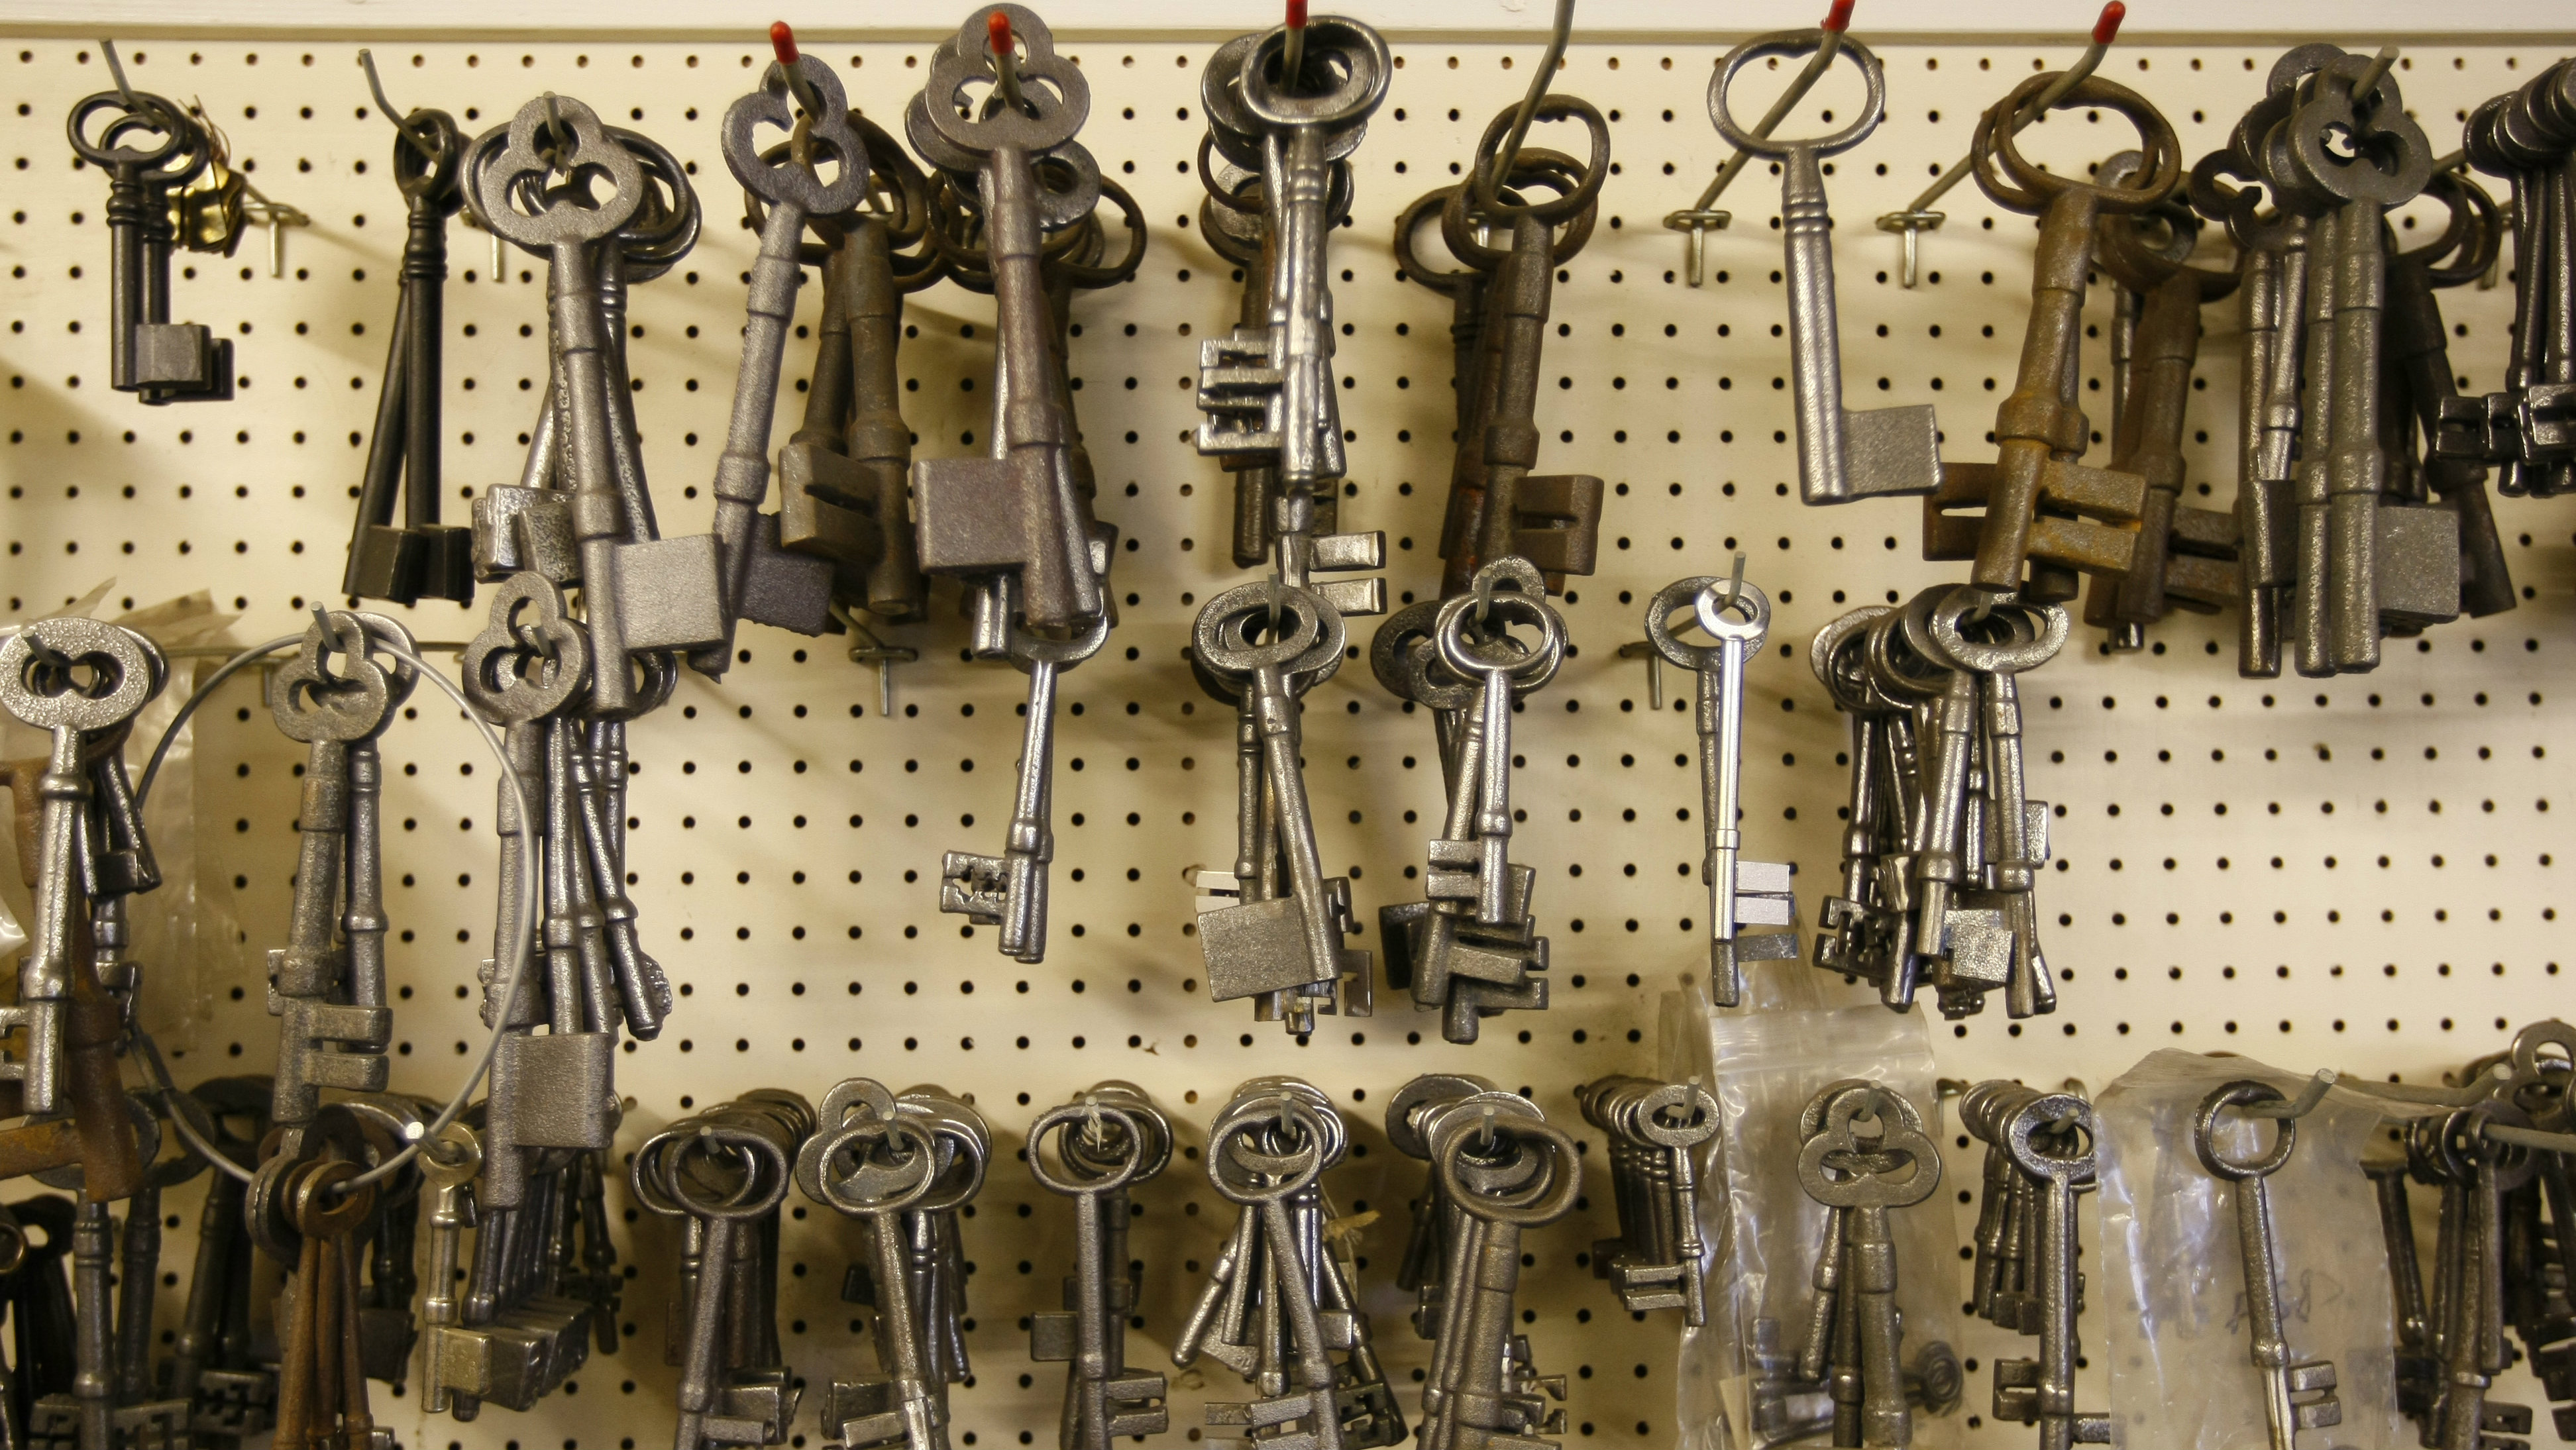 Key blanks hang on pegs at a lock and key shop in Lichfield, central England, June 19, 2009. REUTERS/Phil Noble (BRITAIN)